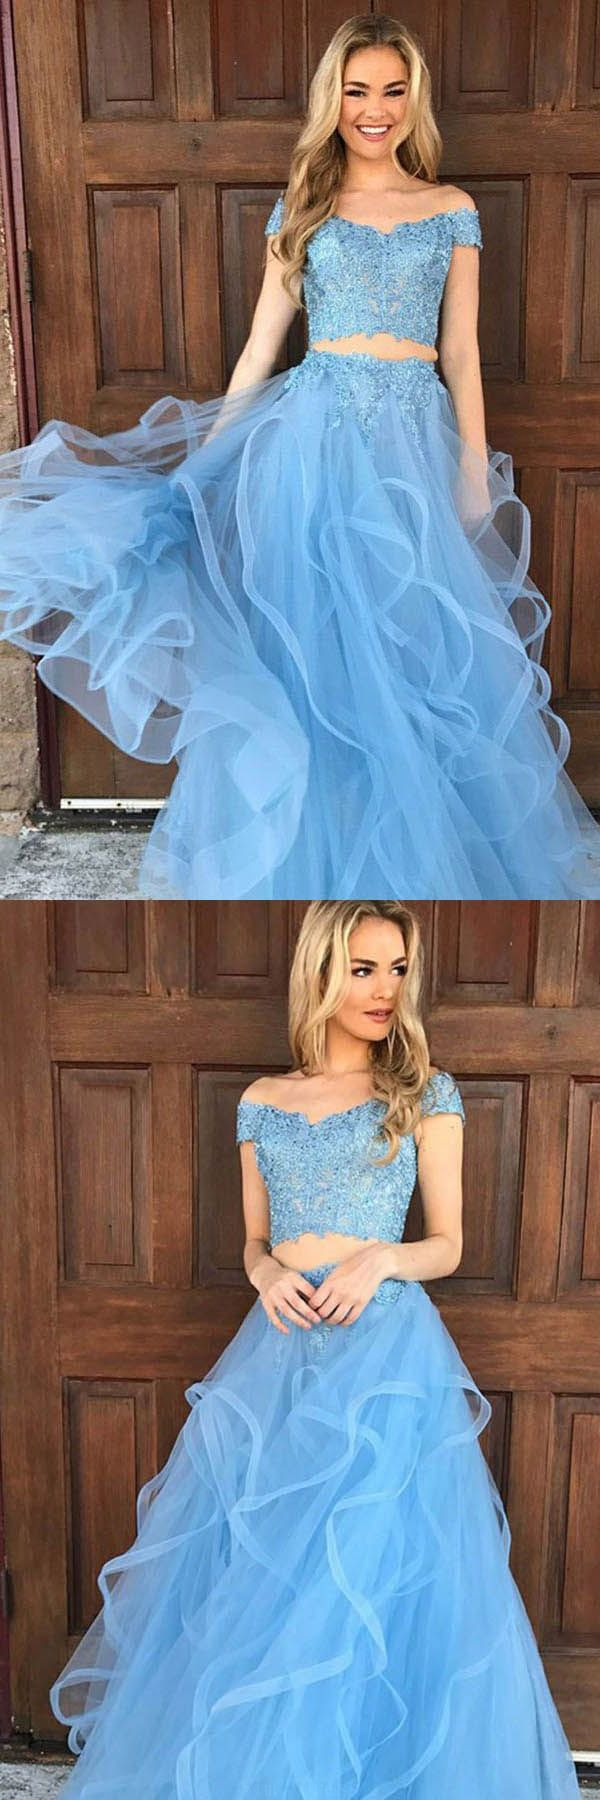 Outstanding blue prom dresses two piece off the shoulder sky blue